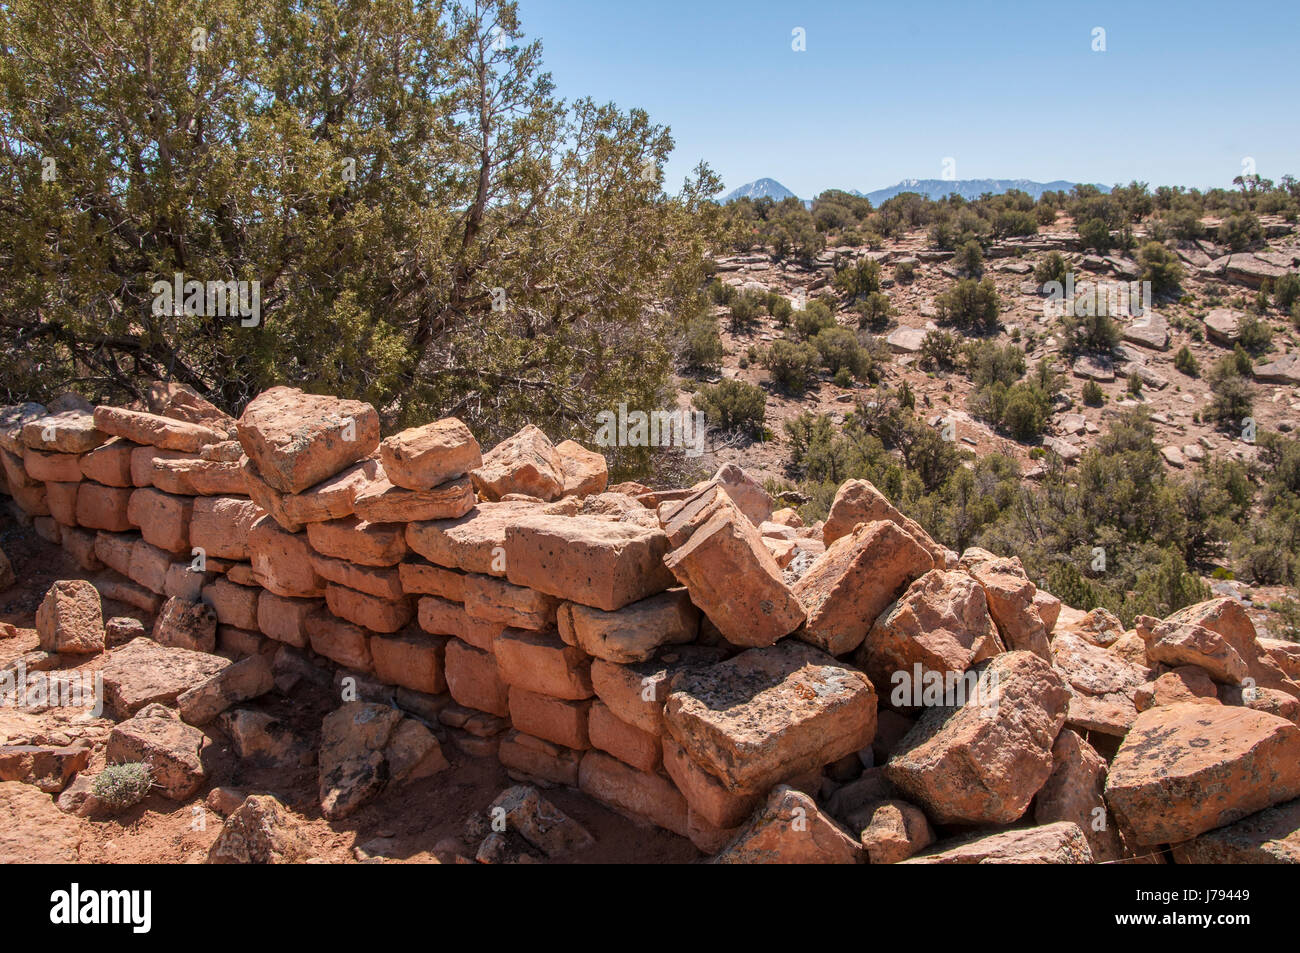 Ruins along BLM Ruin Point Road 4720, Canyons of the Ancients National Monument northwest of Cortez, Colorado. - Stock Image